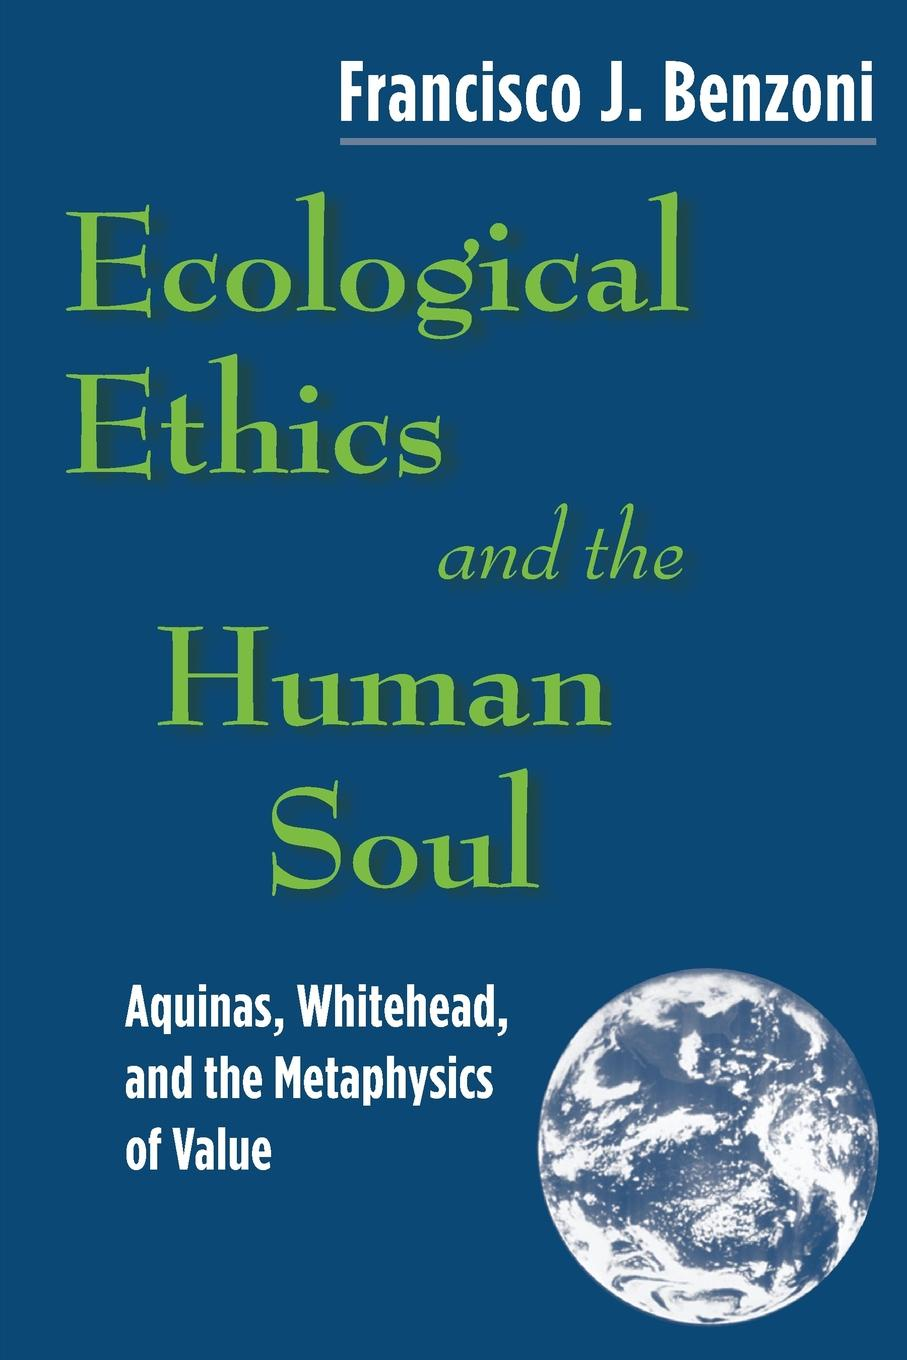 Francisco J. Benzoni Ecological Ethics and the Human Soul. Aquinas, Whitehead, and the Metaphysics of Value carprie new replacement atx motherboard switch on off reset power cable for pc computer 17aug23 dropshipping